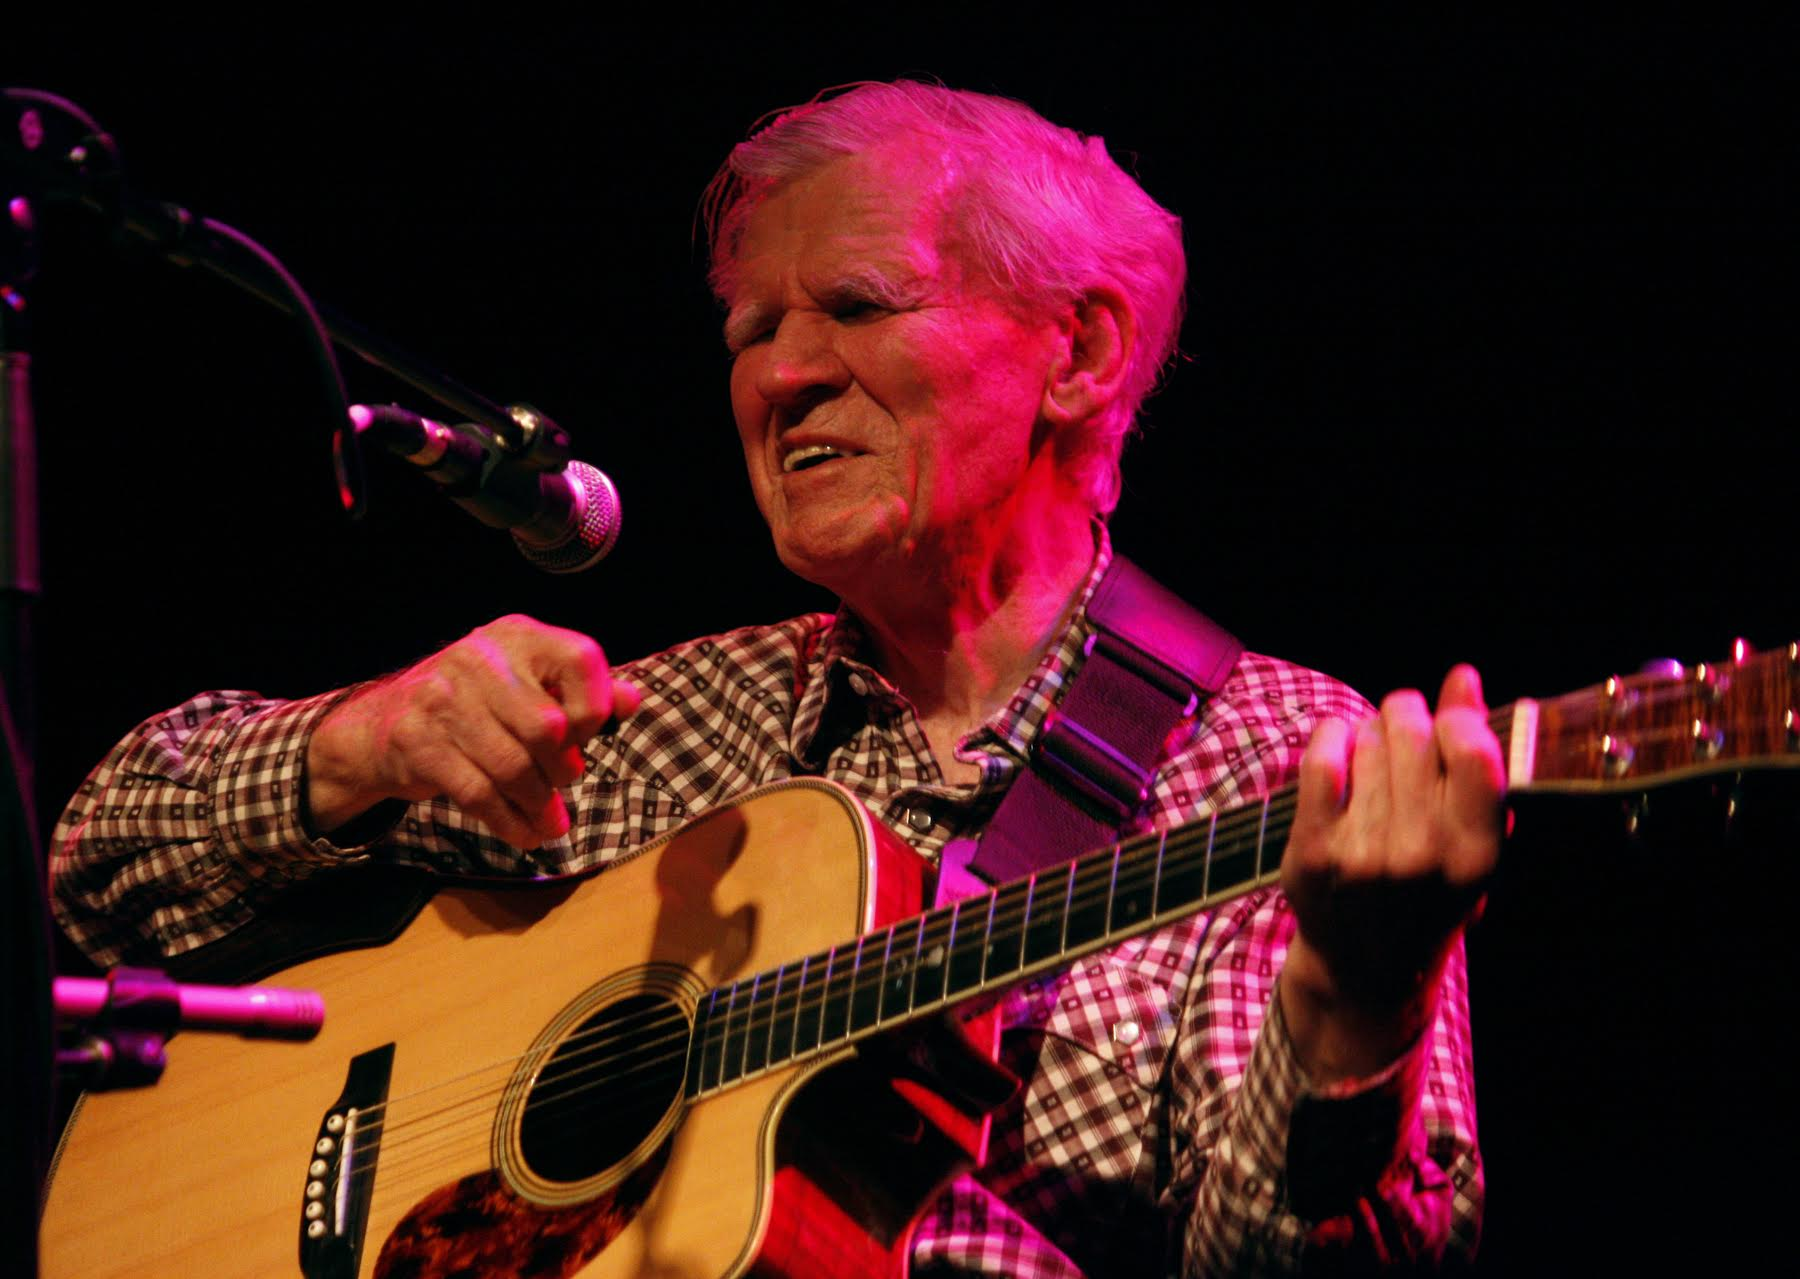 Doc Watson, photographed in December 2010 by one of our guests on the show, Daniel Coston.